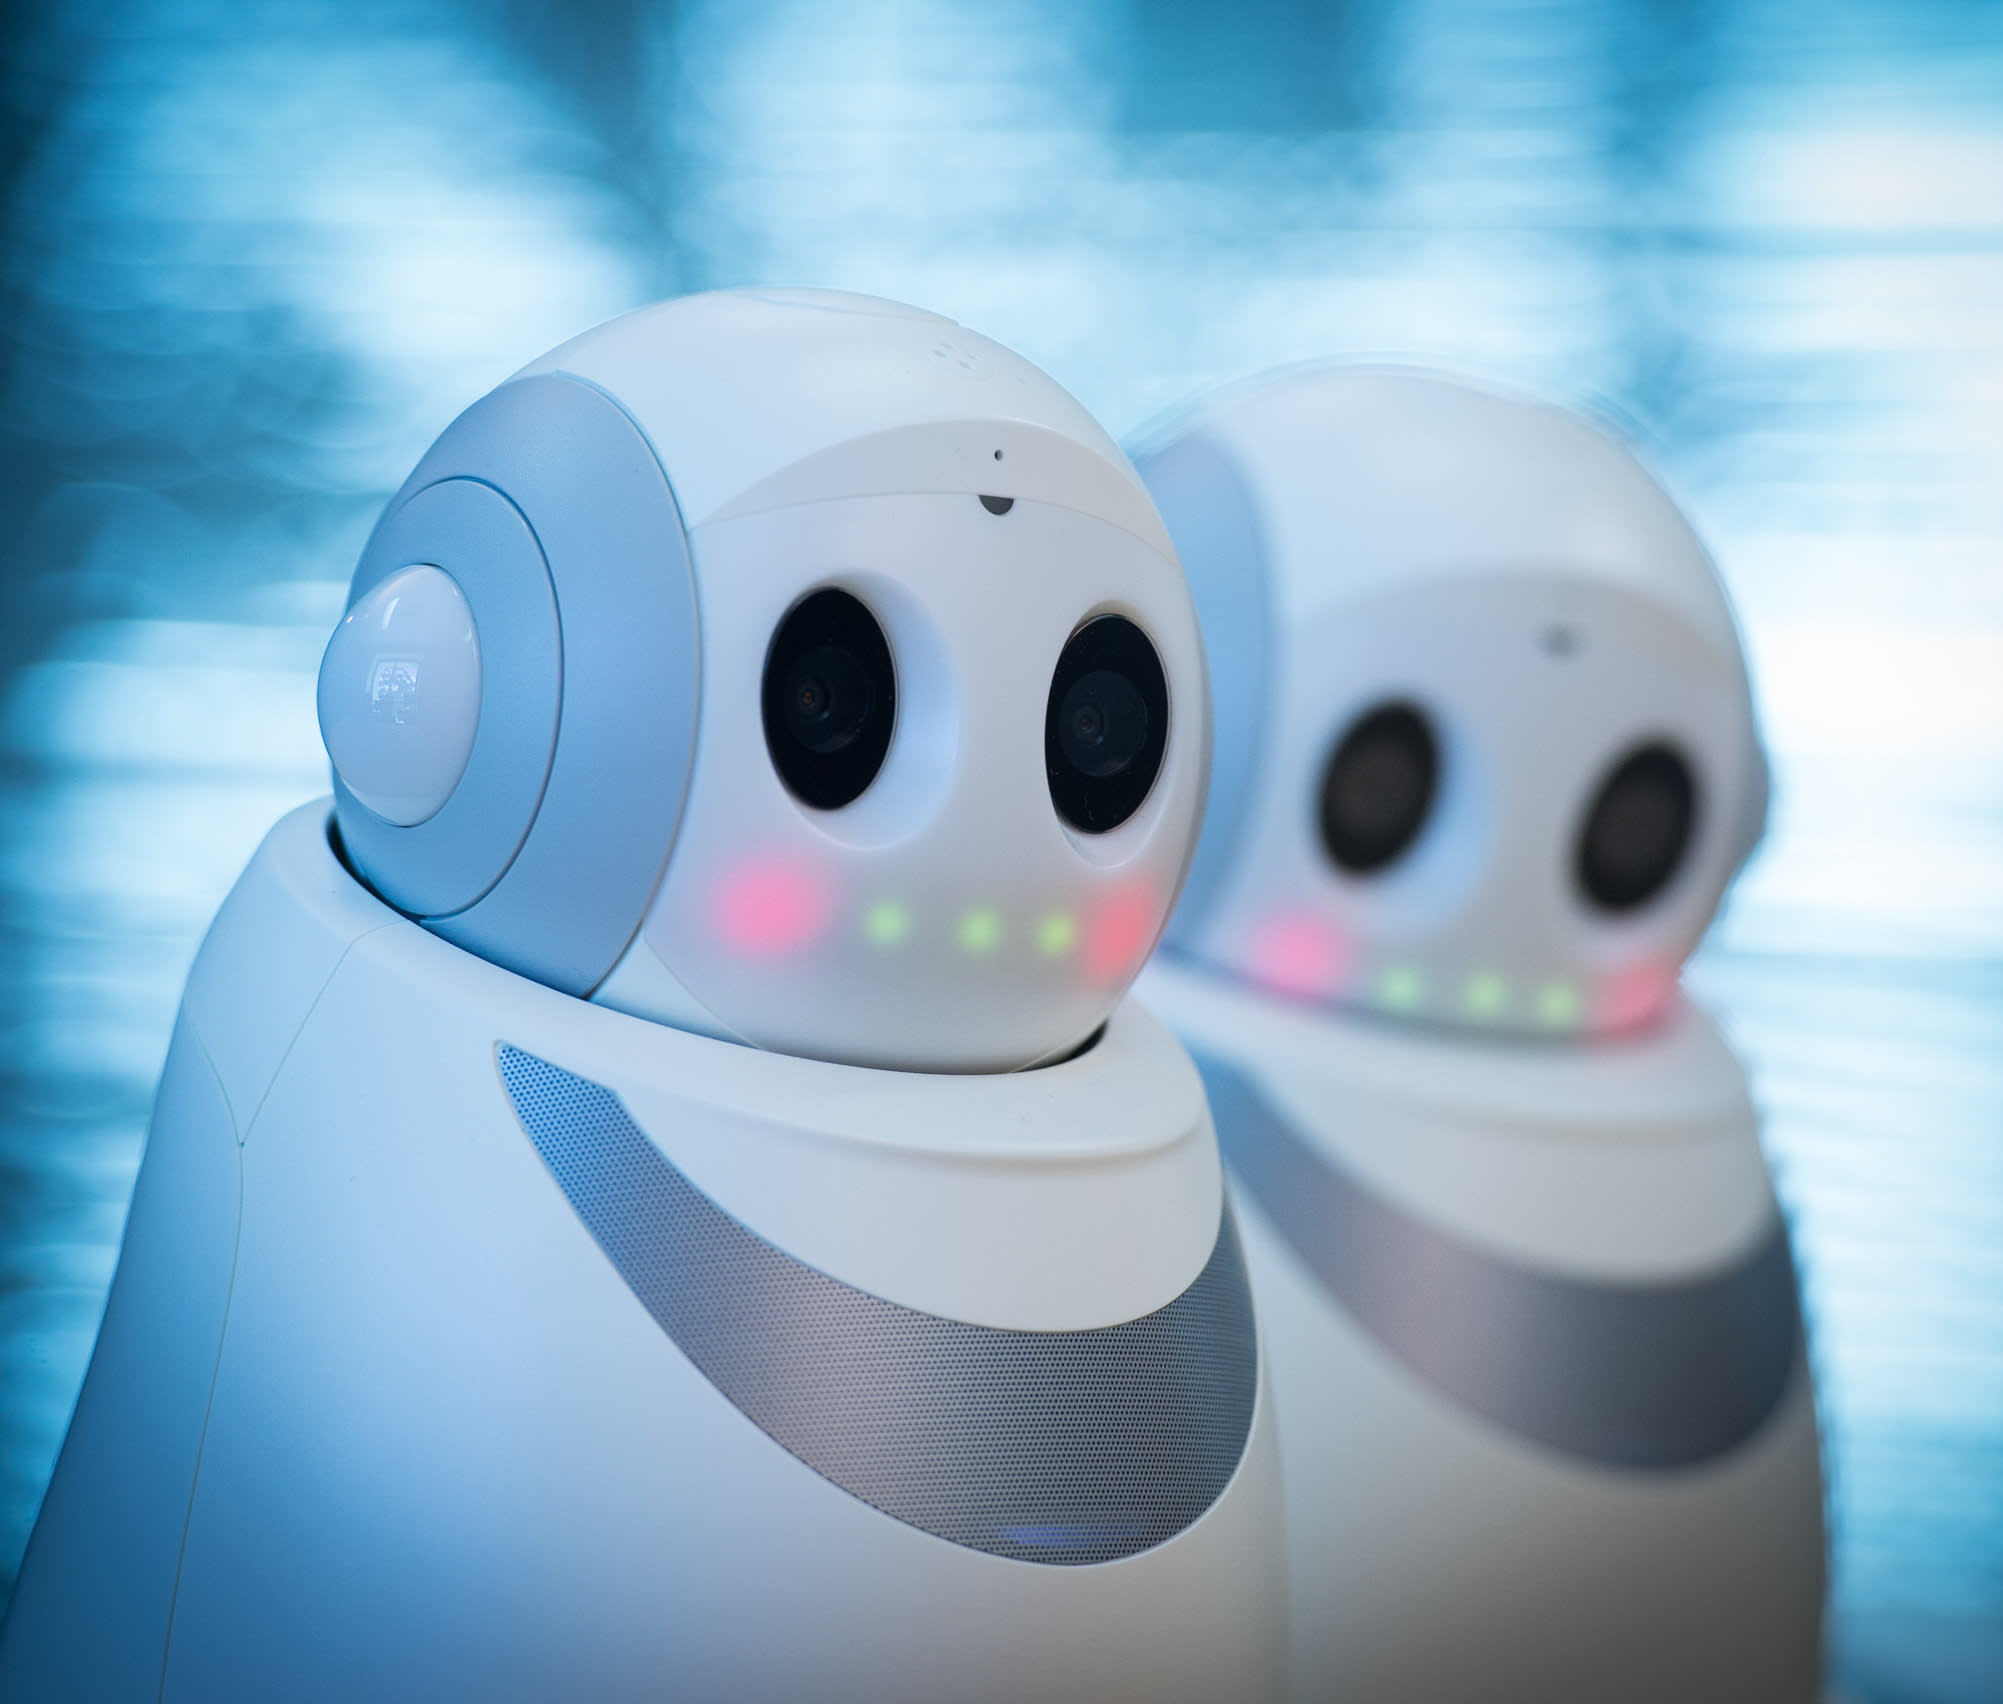 Robo firm to recruit advisers ahead of pension move